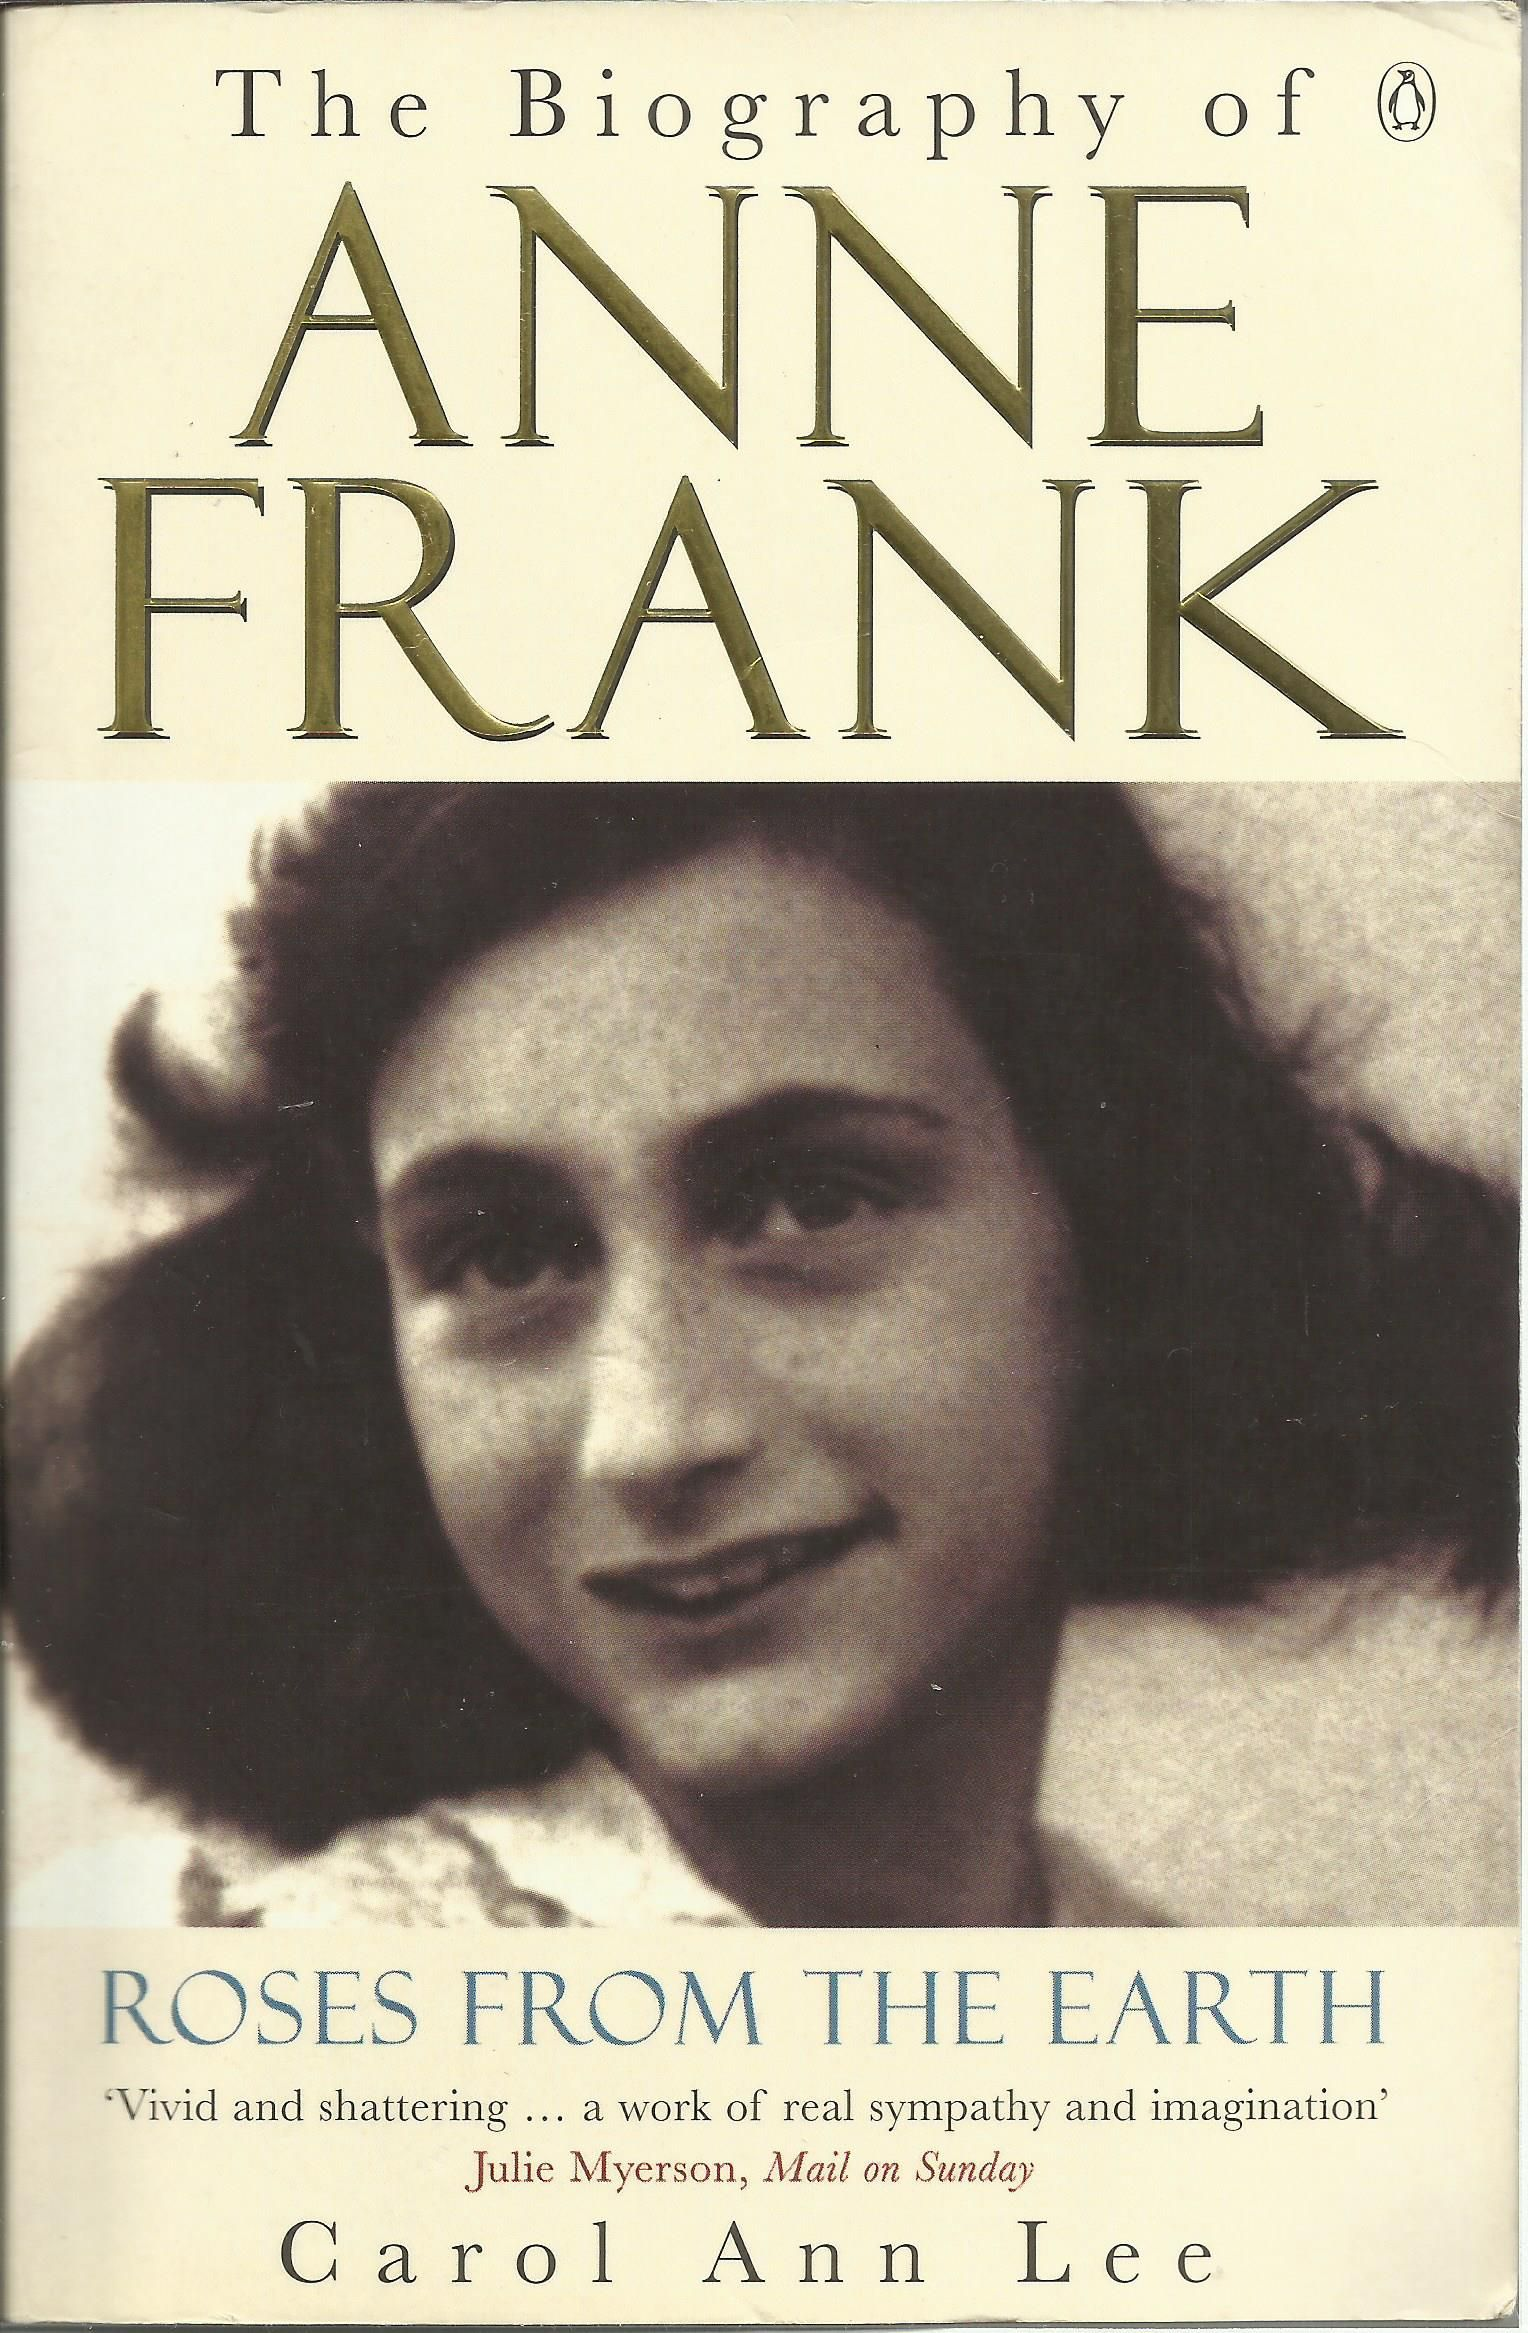 ROSES FROM THE EARTH: The Biography of Anne Frank, By Carol Ann Lee. 'Very readable - compulsively so, at times, as the appalling drama of the events described unfolds with novelistic tension... what emerges...is a fuller, more accurate portrait of Anne herself... a portrait, too, that puts an individual ordeal in its social, political and historical context' Martyn Bedford, New Statesman. ISBN: 0-14-027628-9